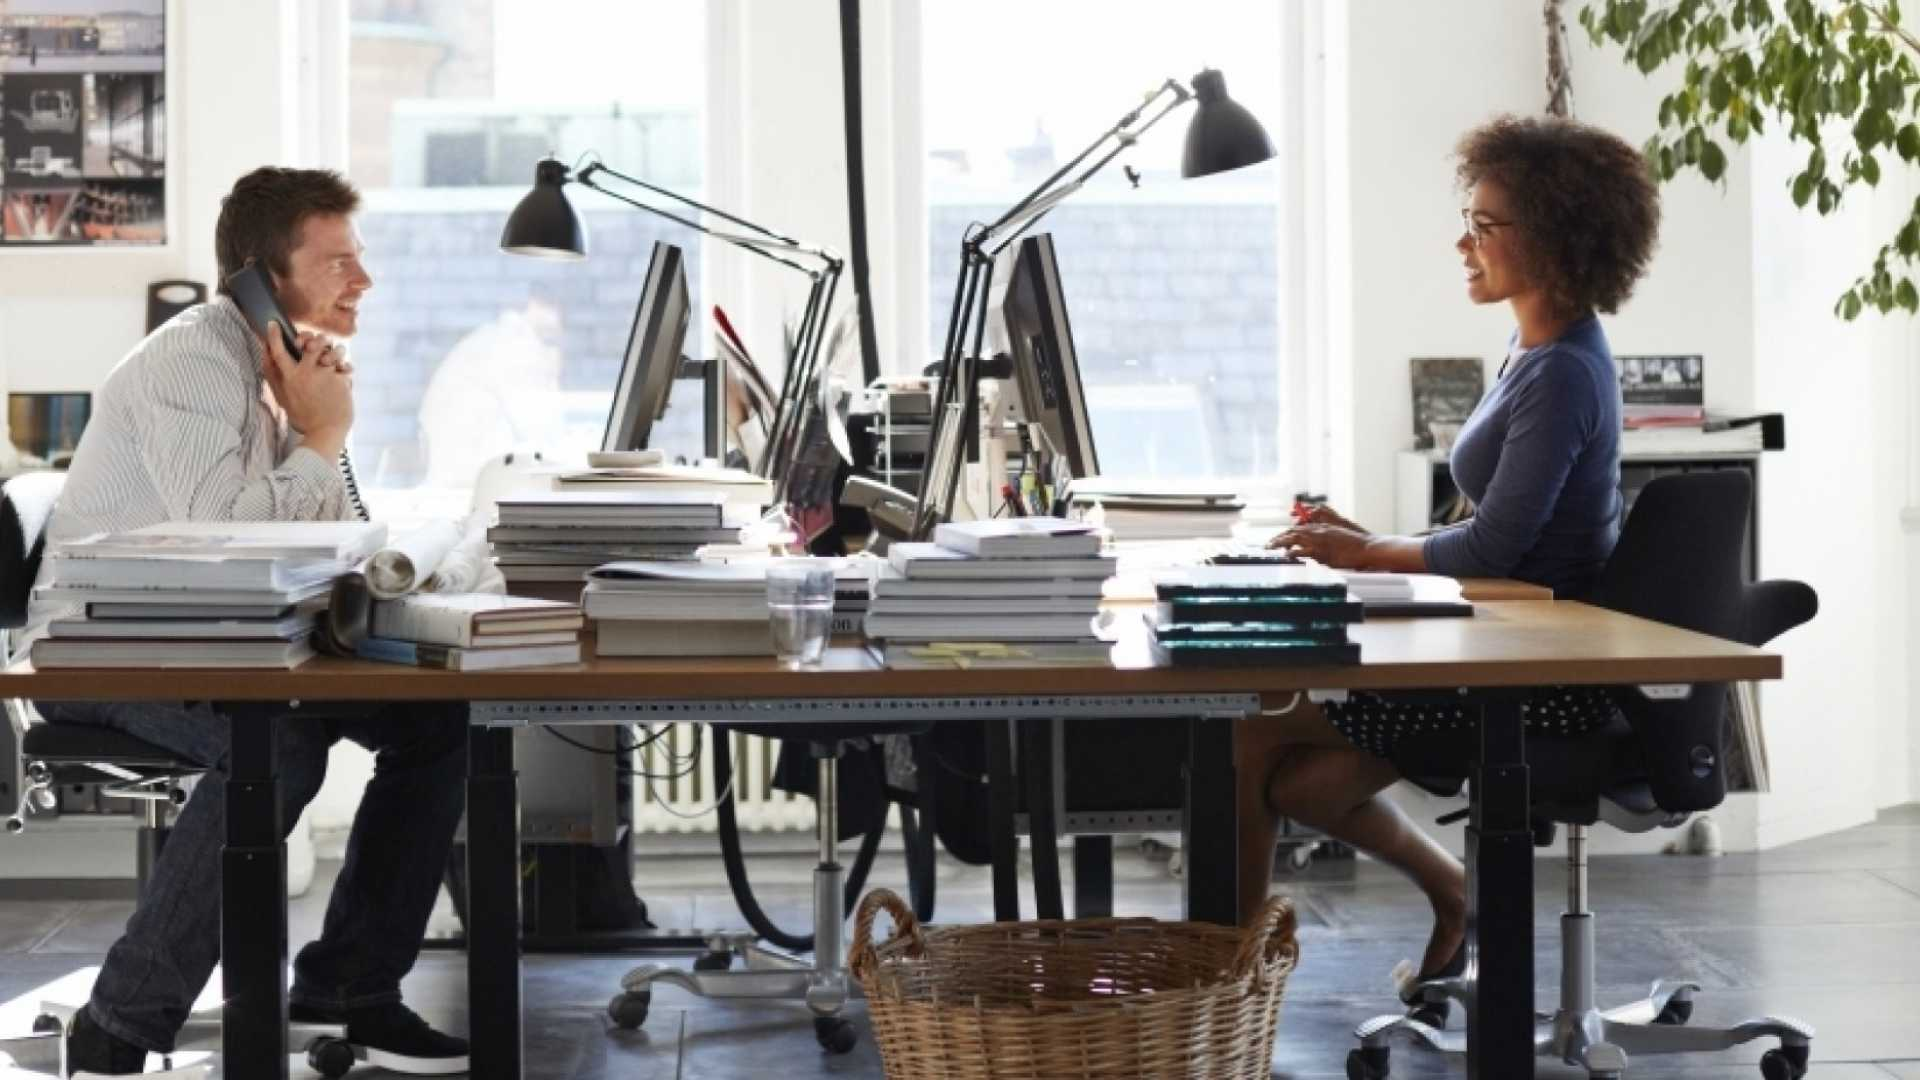 17 Simple Steps to Starting a Business While Working Full Time